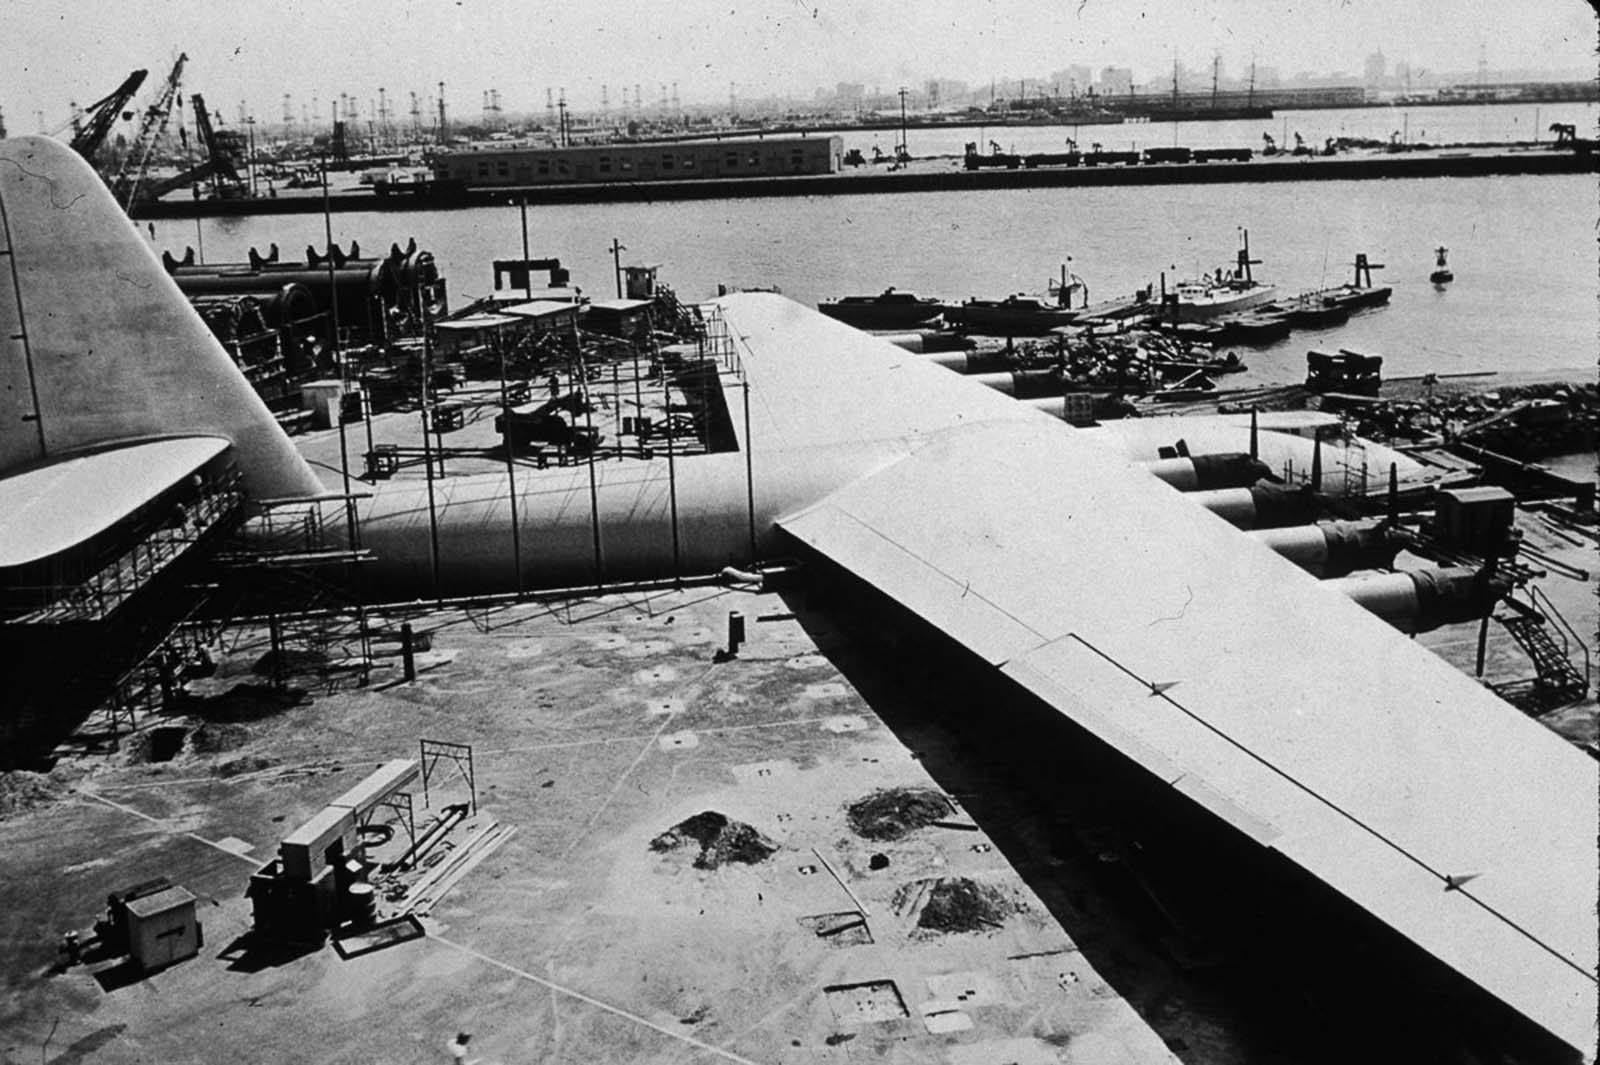 A house moving company transported the airplane on streets to Pier E in Long Beach, California. They moved it in three large sections: the fuselage, each wing—and a fourth, smaller shipment with tail assembly parts and other smaller assemblies.